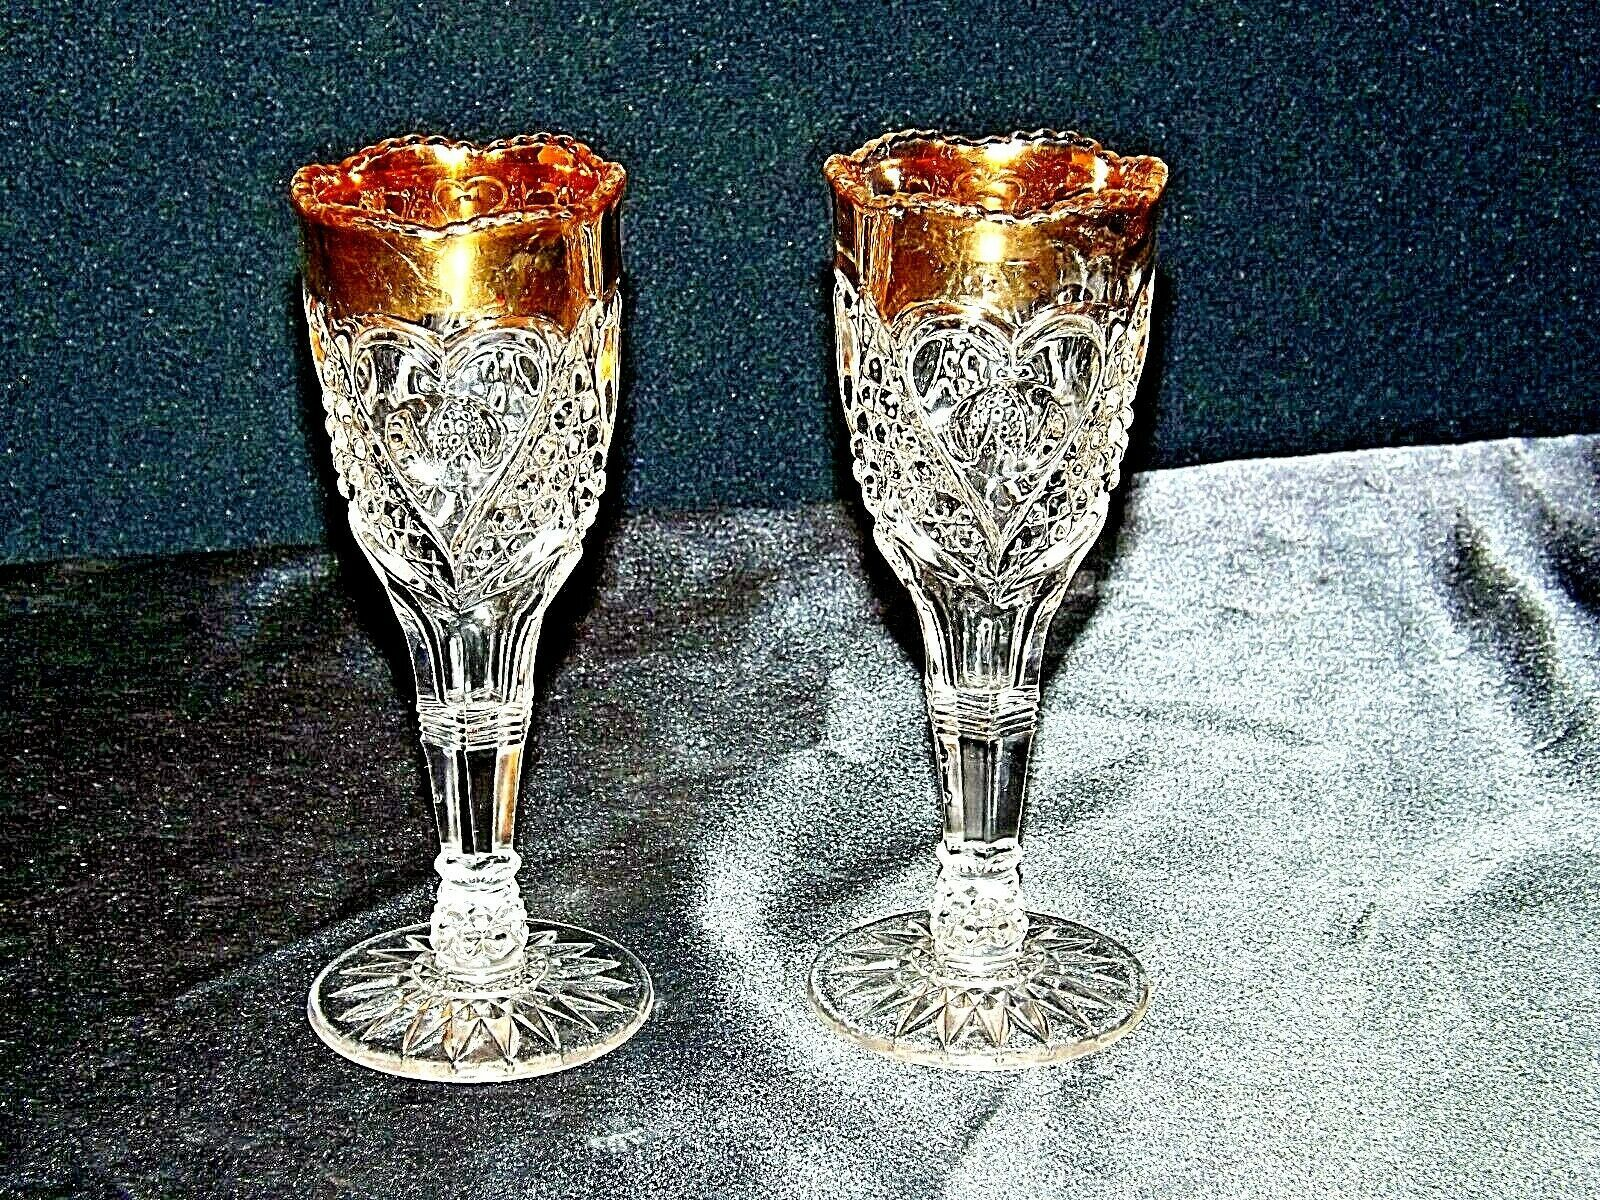 Vintage Medium weight Cut Glass Goblets with Detailed DesignAA19-LD11926